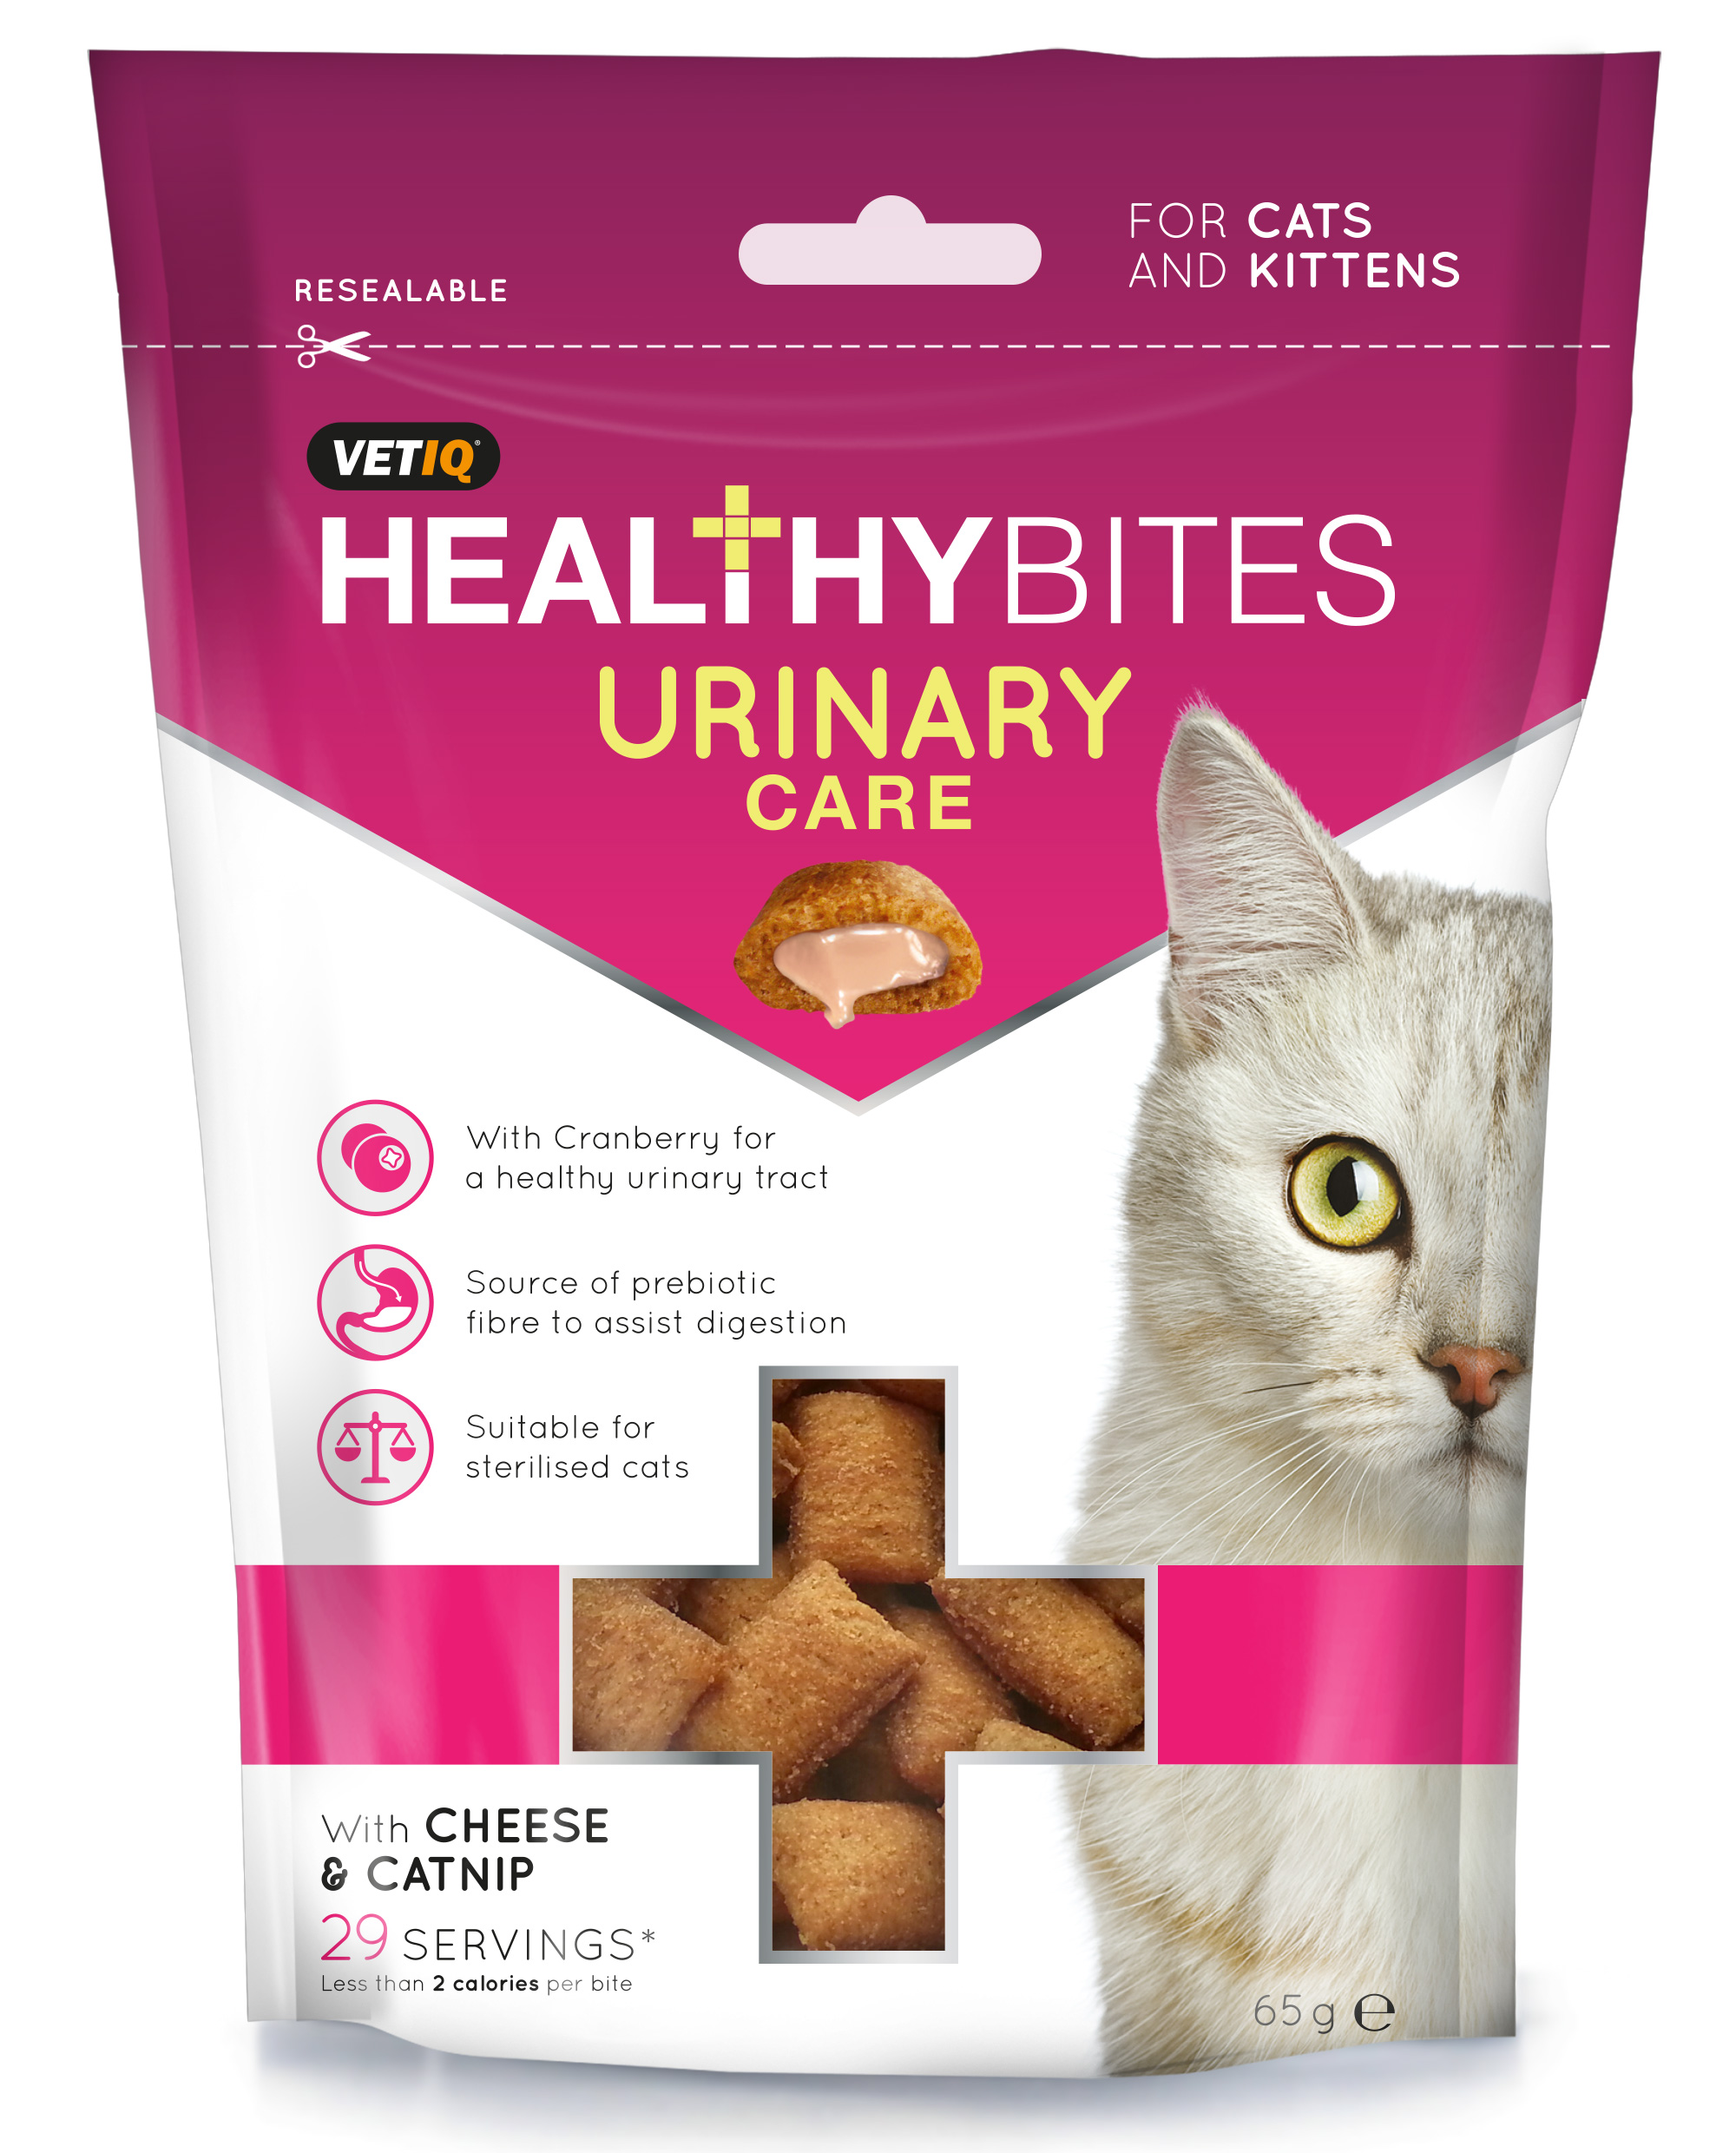 Healthy Bites Urinary Care